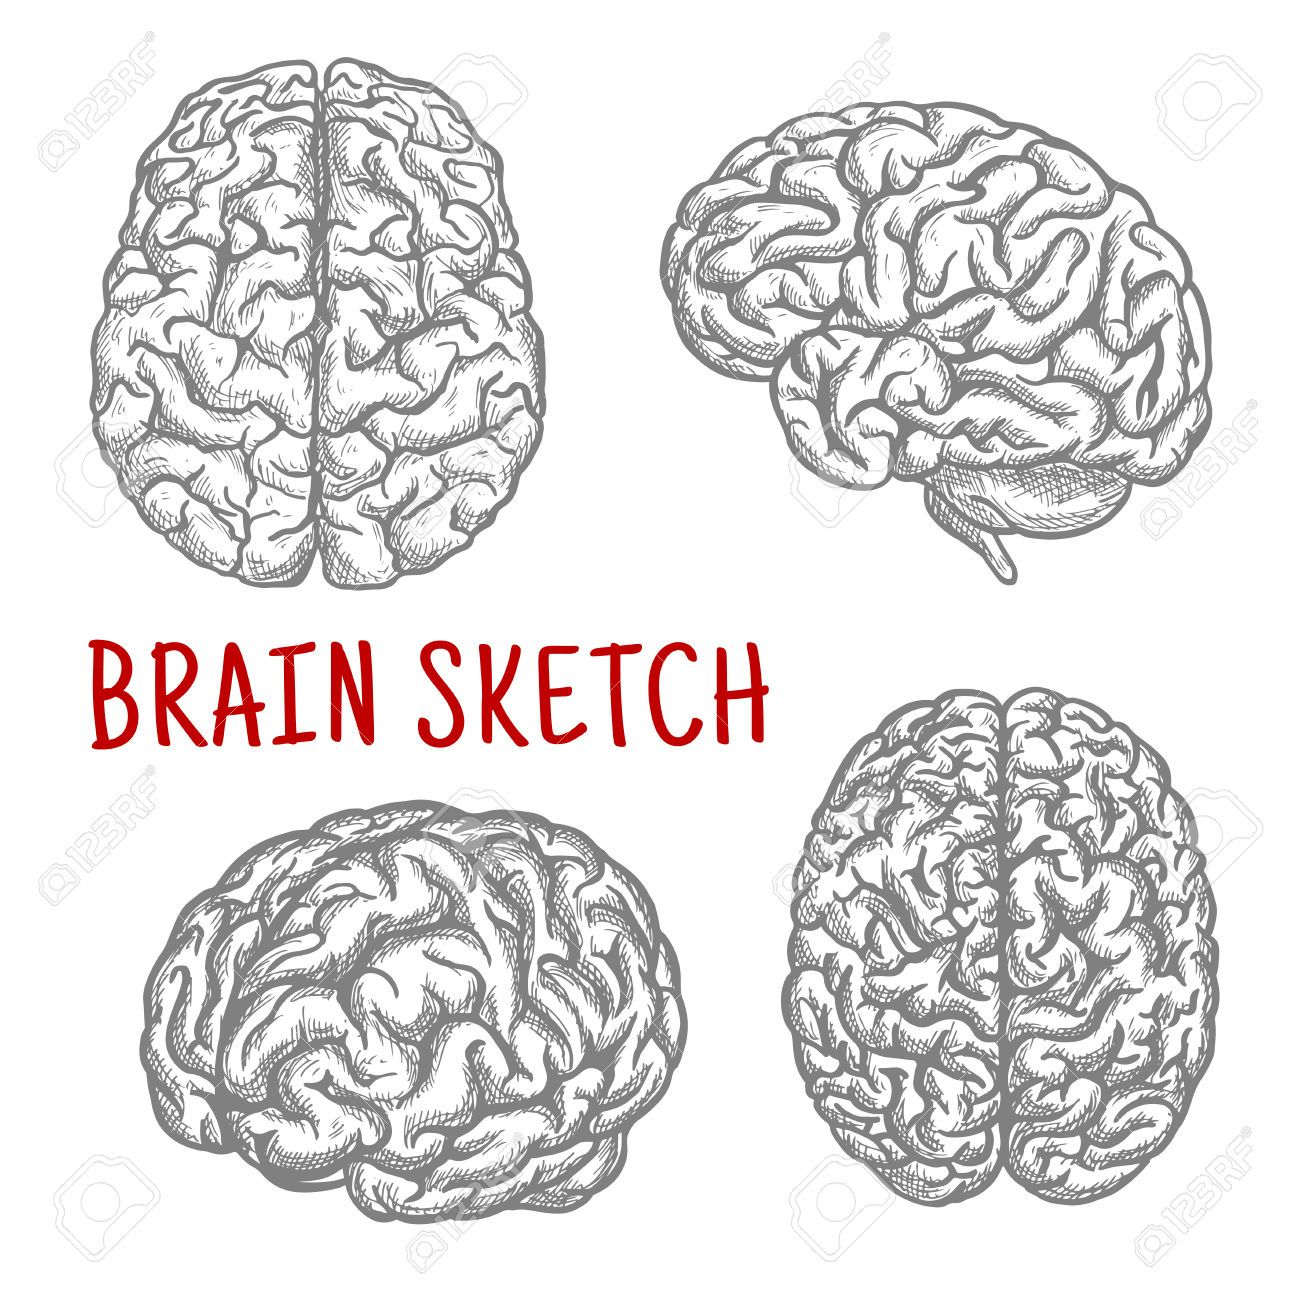 57808097 brain sketch symbols with engraving illustrations of 57808097 brain sketch symbols with engraving illustrations of anatomically detailed human brain at different stock vectorg 13001300 ccuart Choice Image